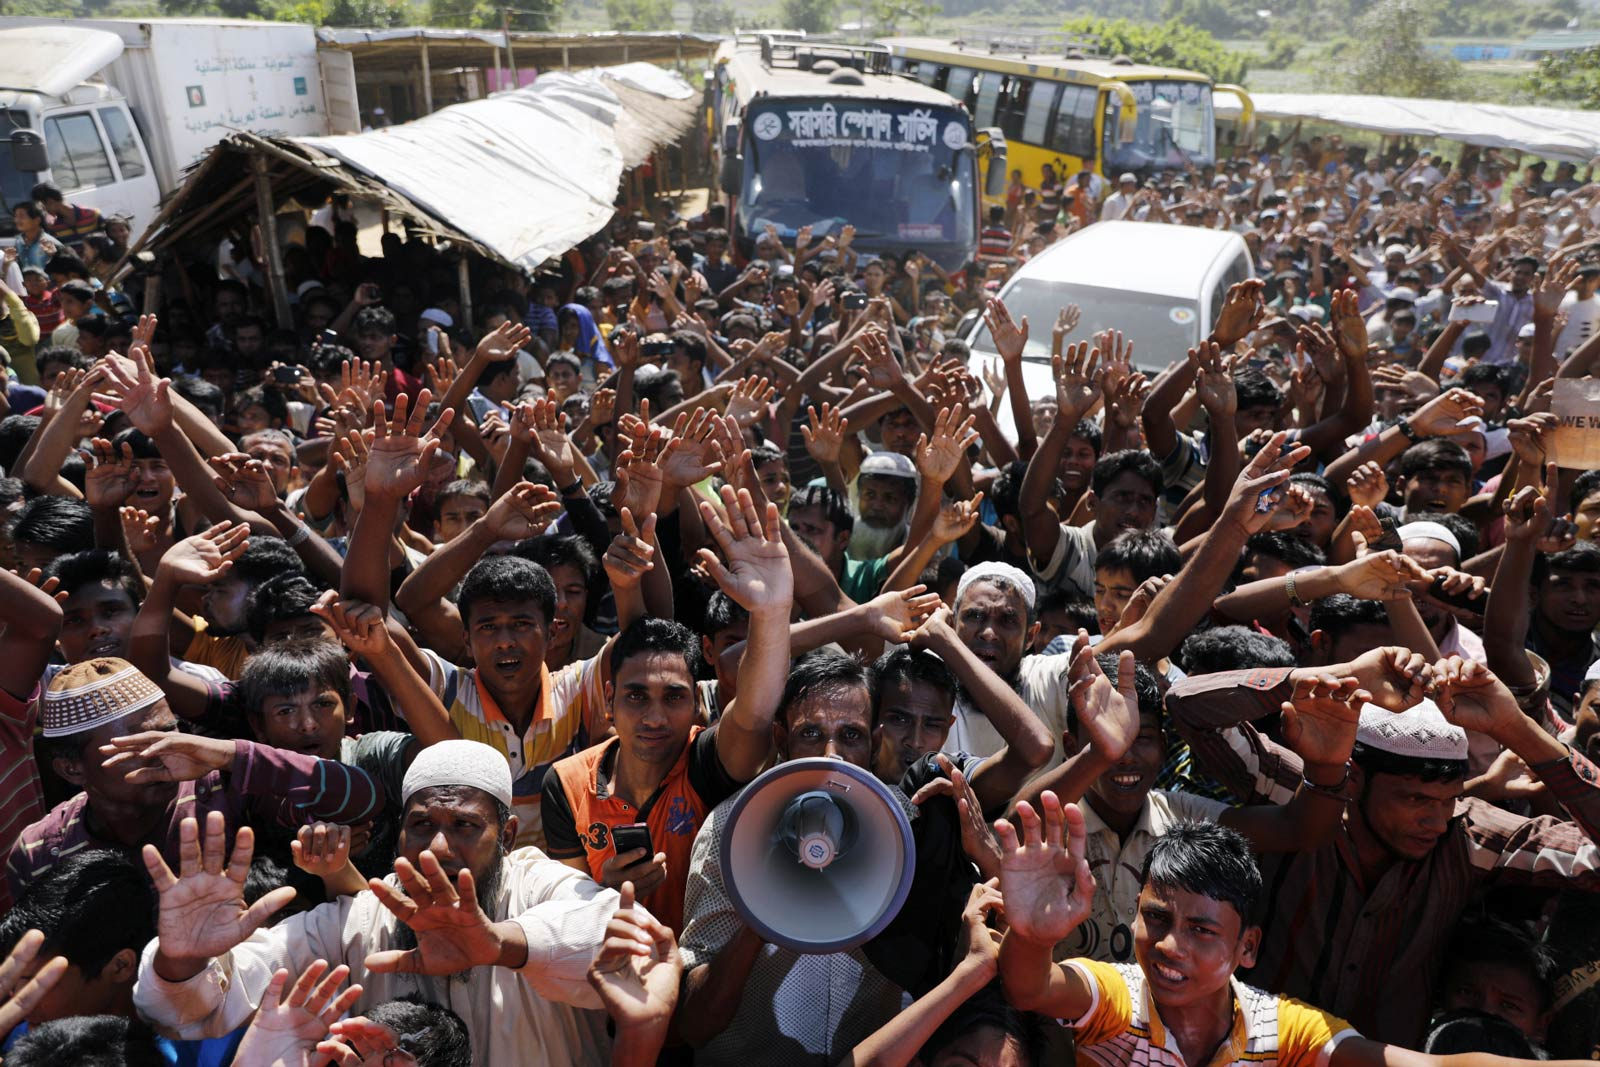 Rohingya refugees shout slogans during a protest against a disputed repatriation programme at the Unchiprang refugee camp near Teknaf, Bangladesh, 15 November 2018. Photo: EPA-EFE/K M Asad